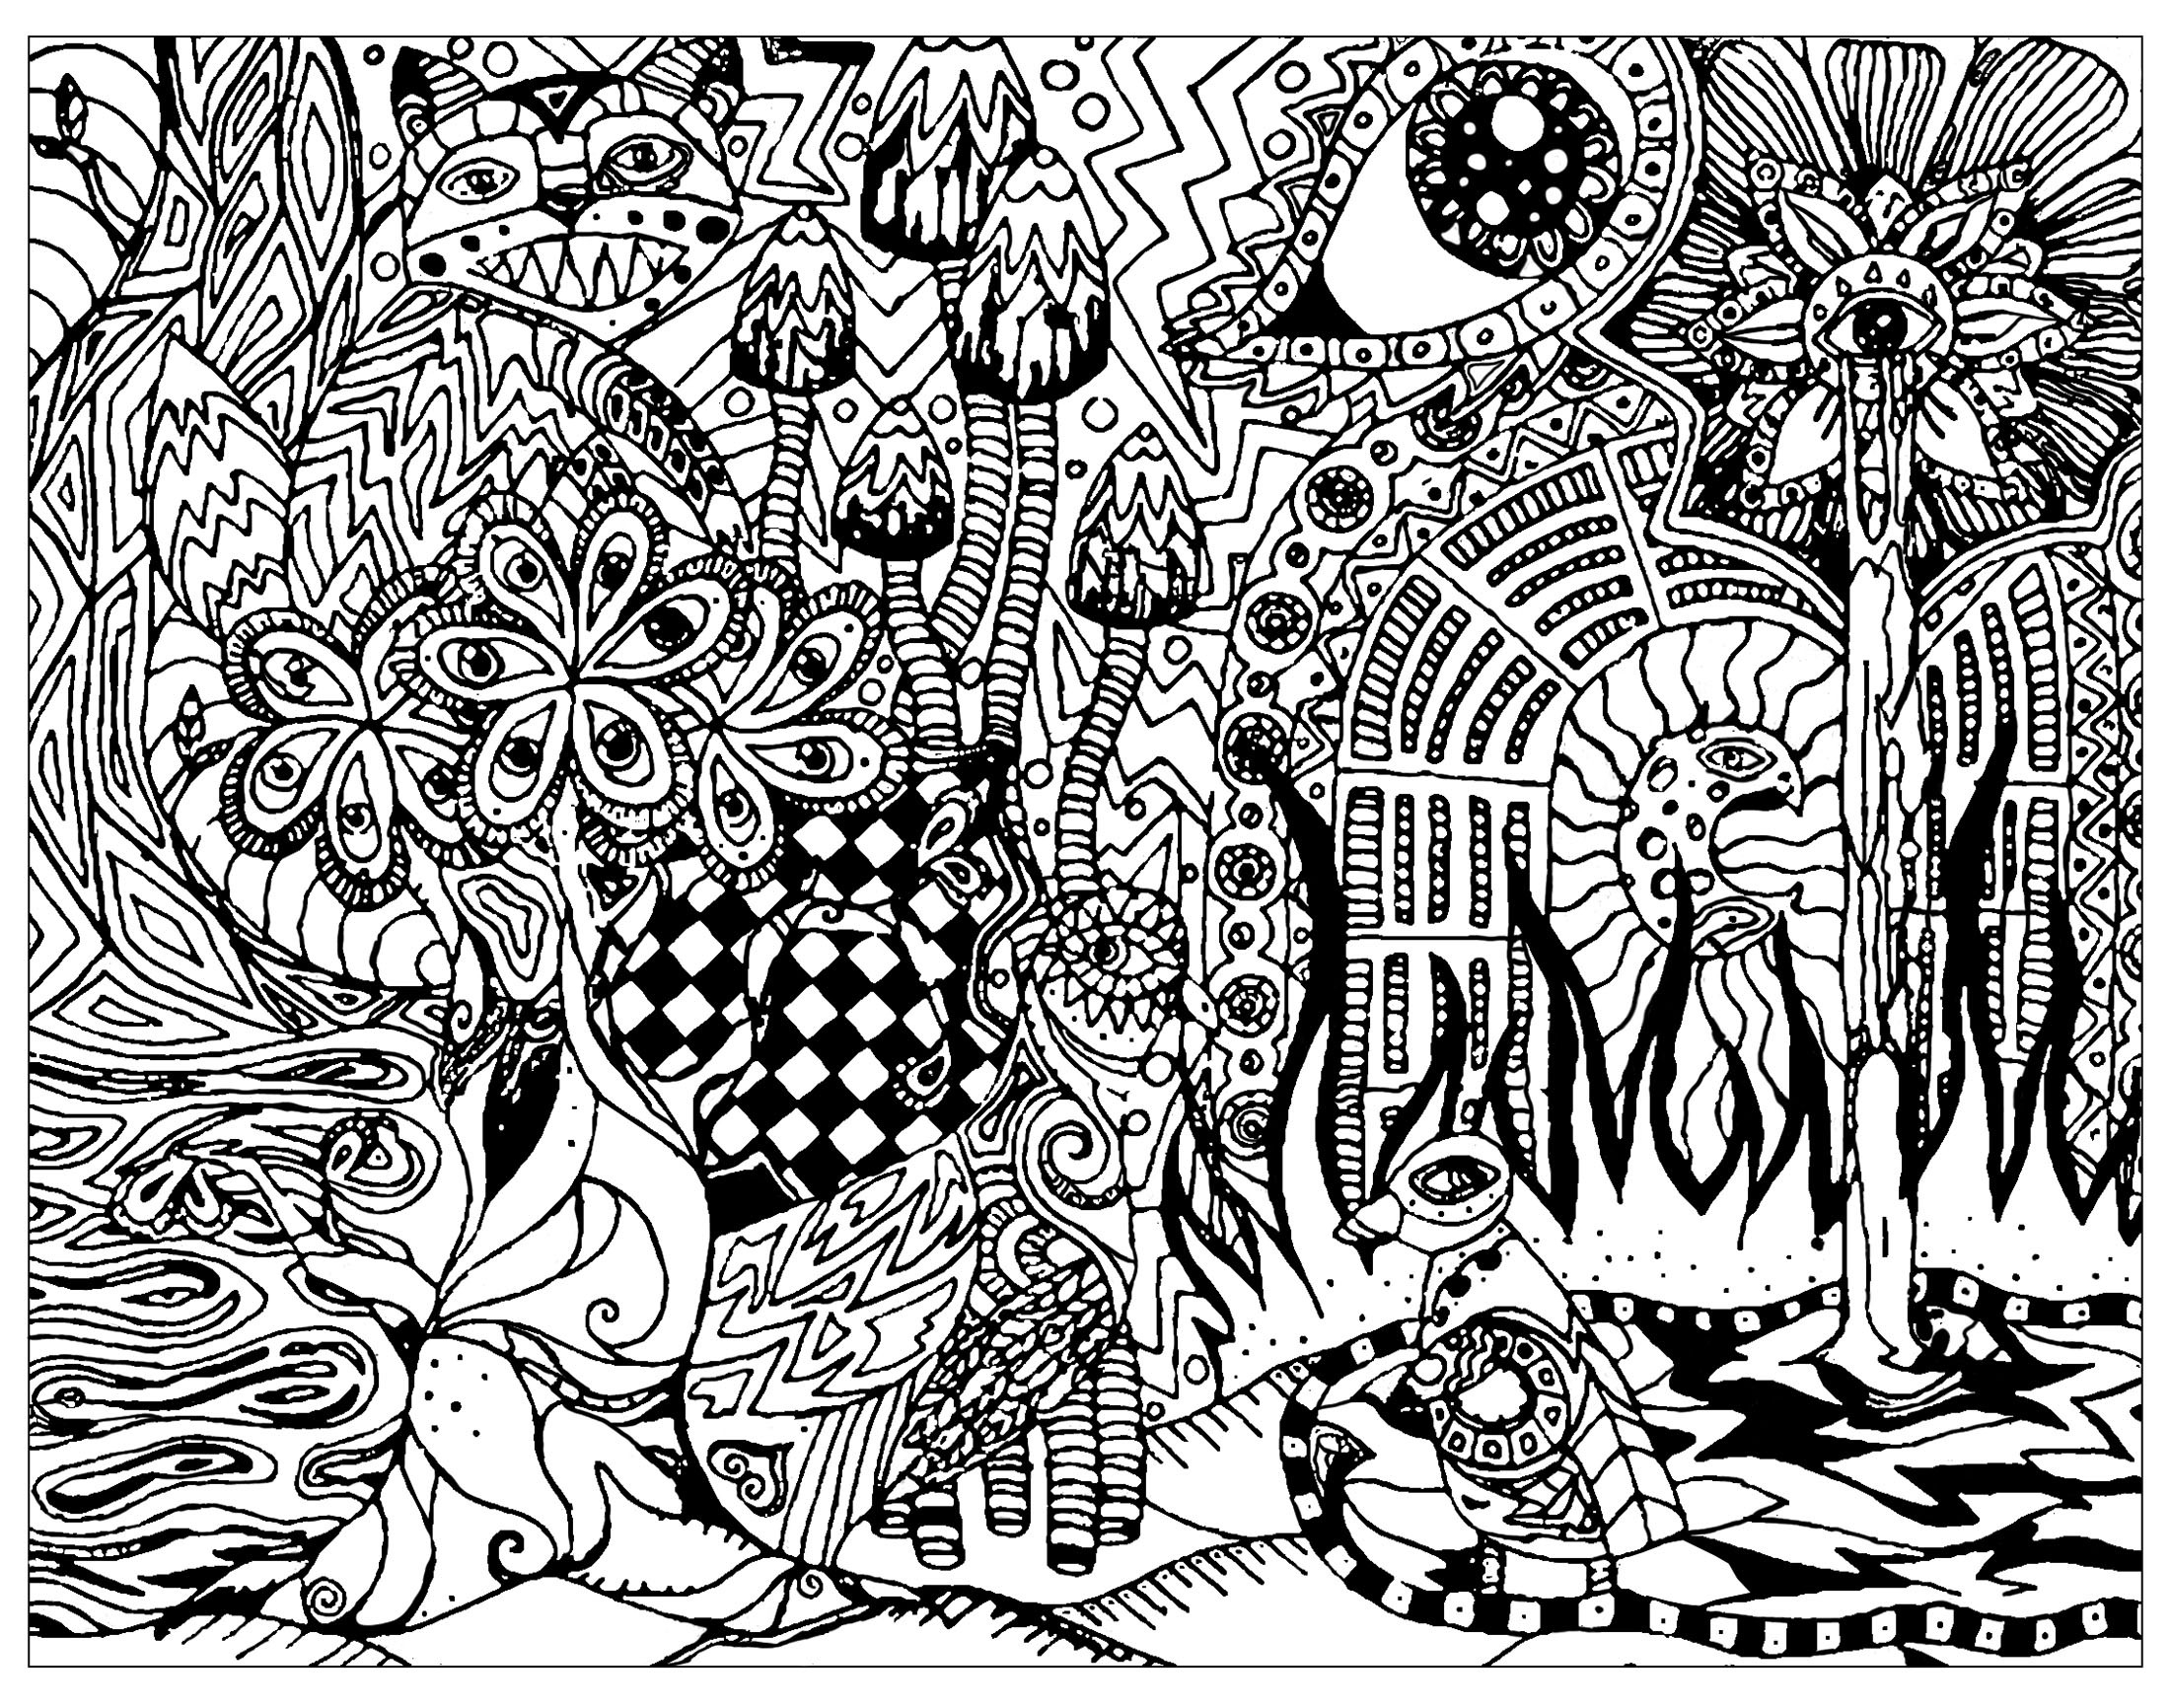 trippy coloring sheets items similar to trippy coloring pages on etsy sheets trippy coloring